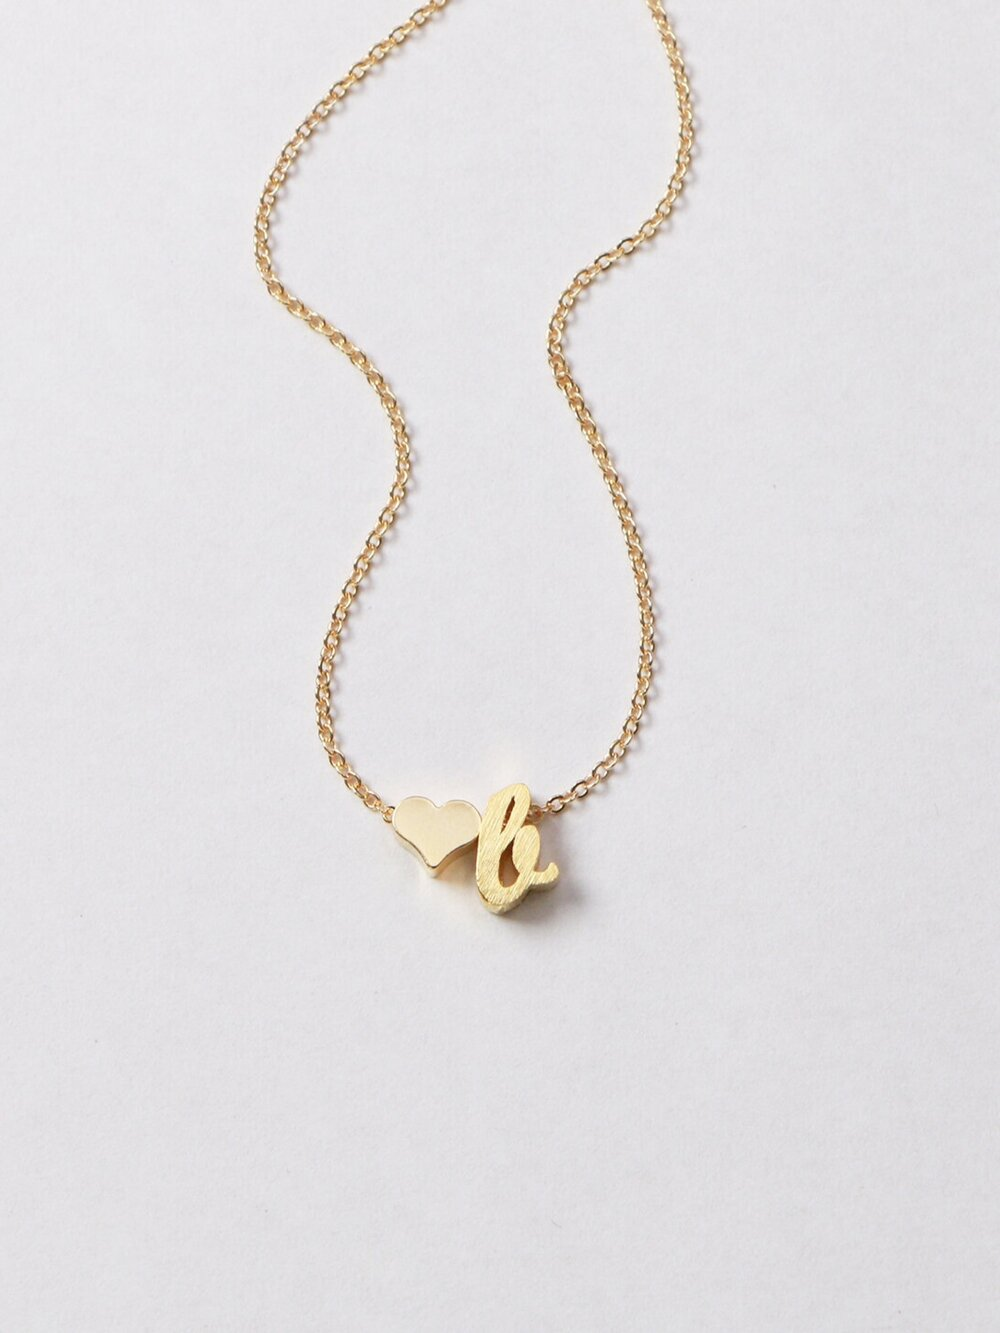 Mica heart initial necklace minthologie mica heart initial necklace aloadofball Gallery